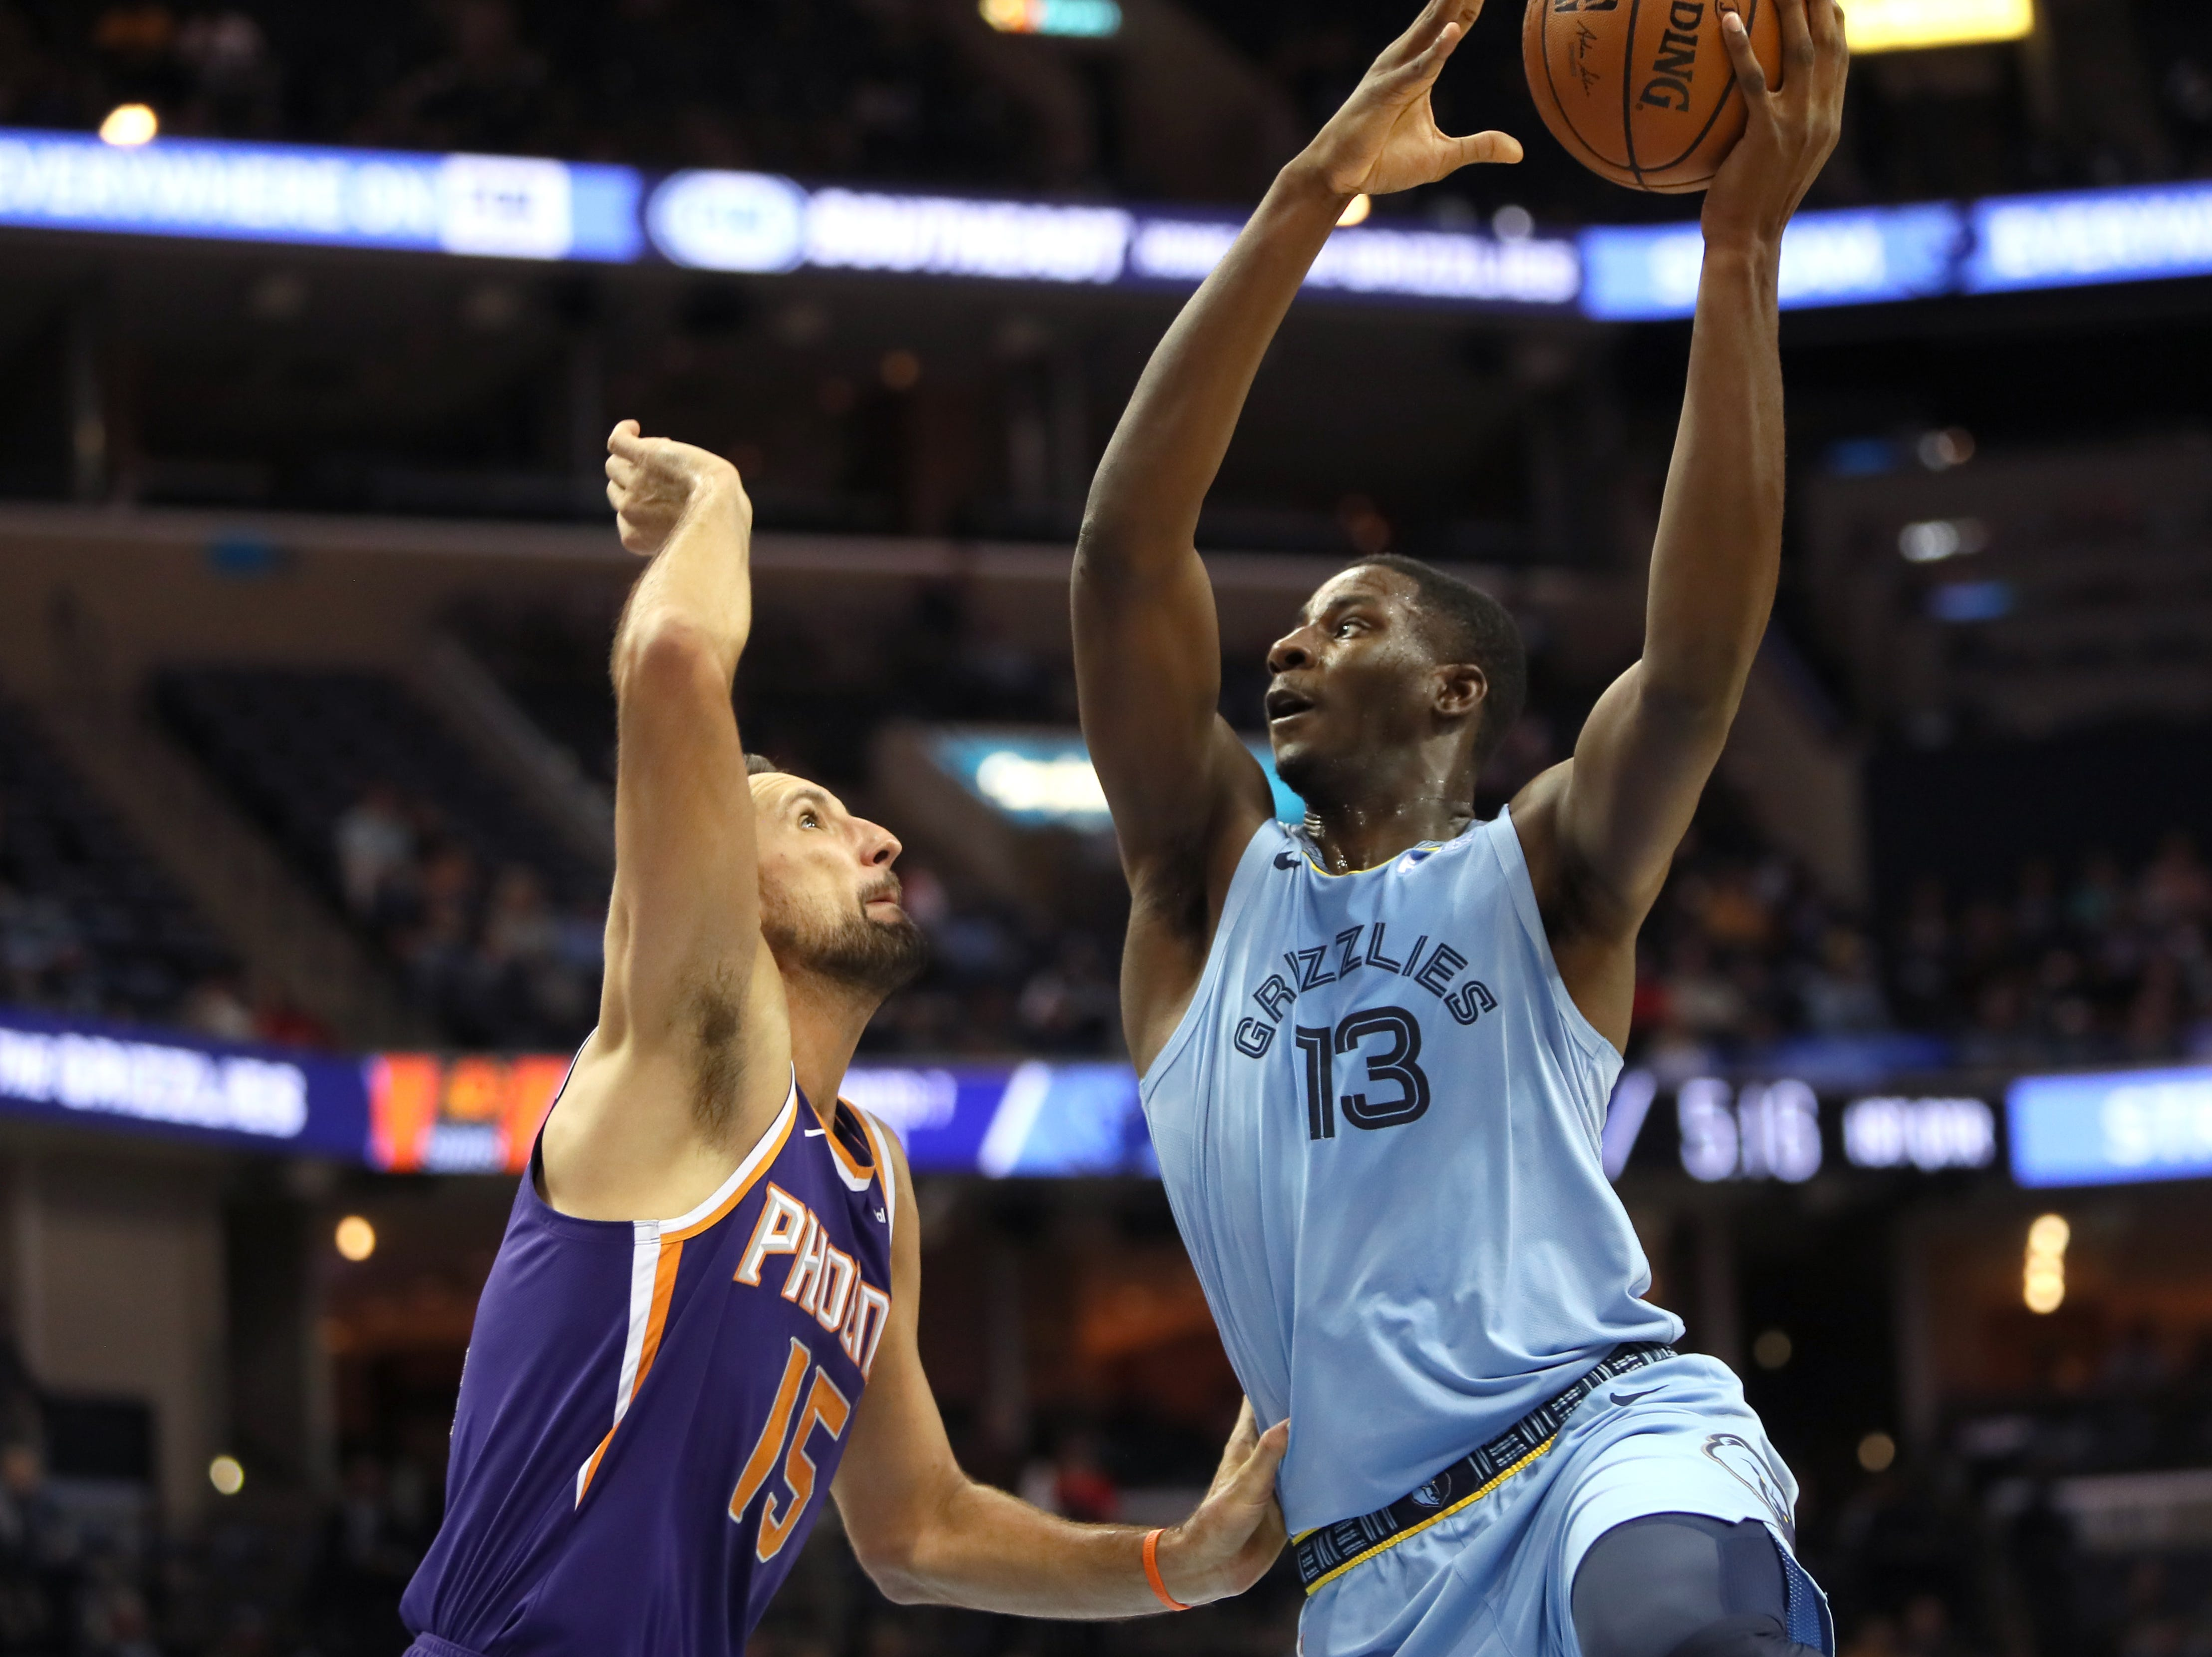 Memphis Grizzlies forward Jaren Jackson Jr. puts up a shot against Phoenix Suns forward Ryan Anderson during their game at FedExForum on Saturday, Oct. 27, 2018.